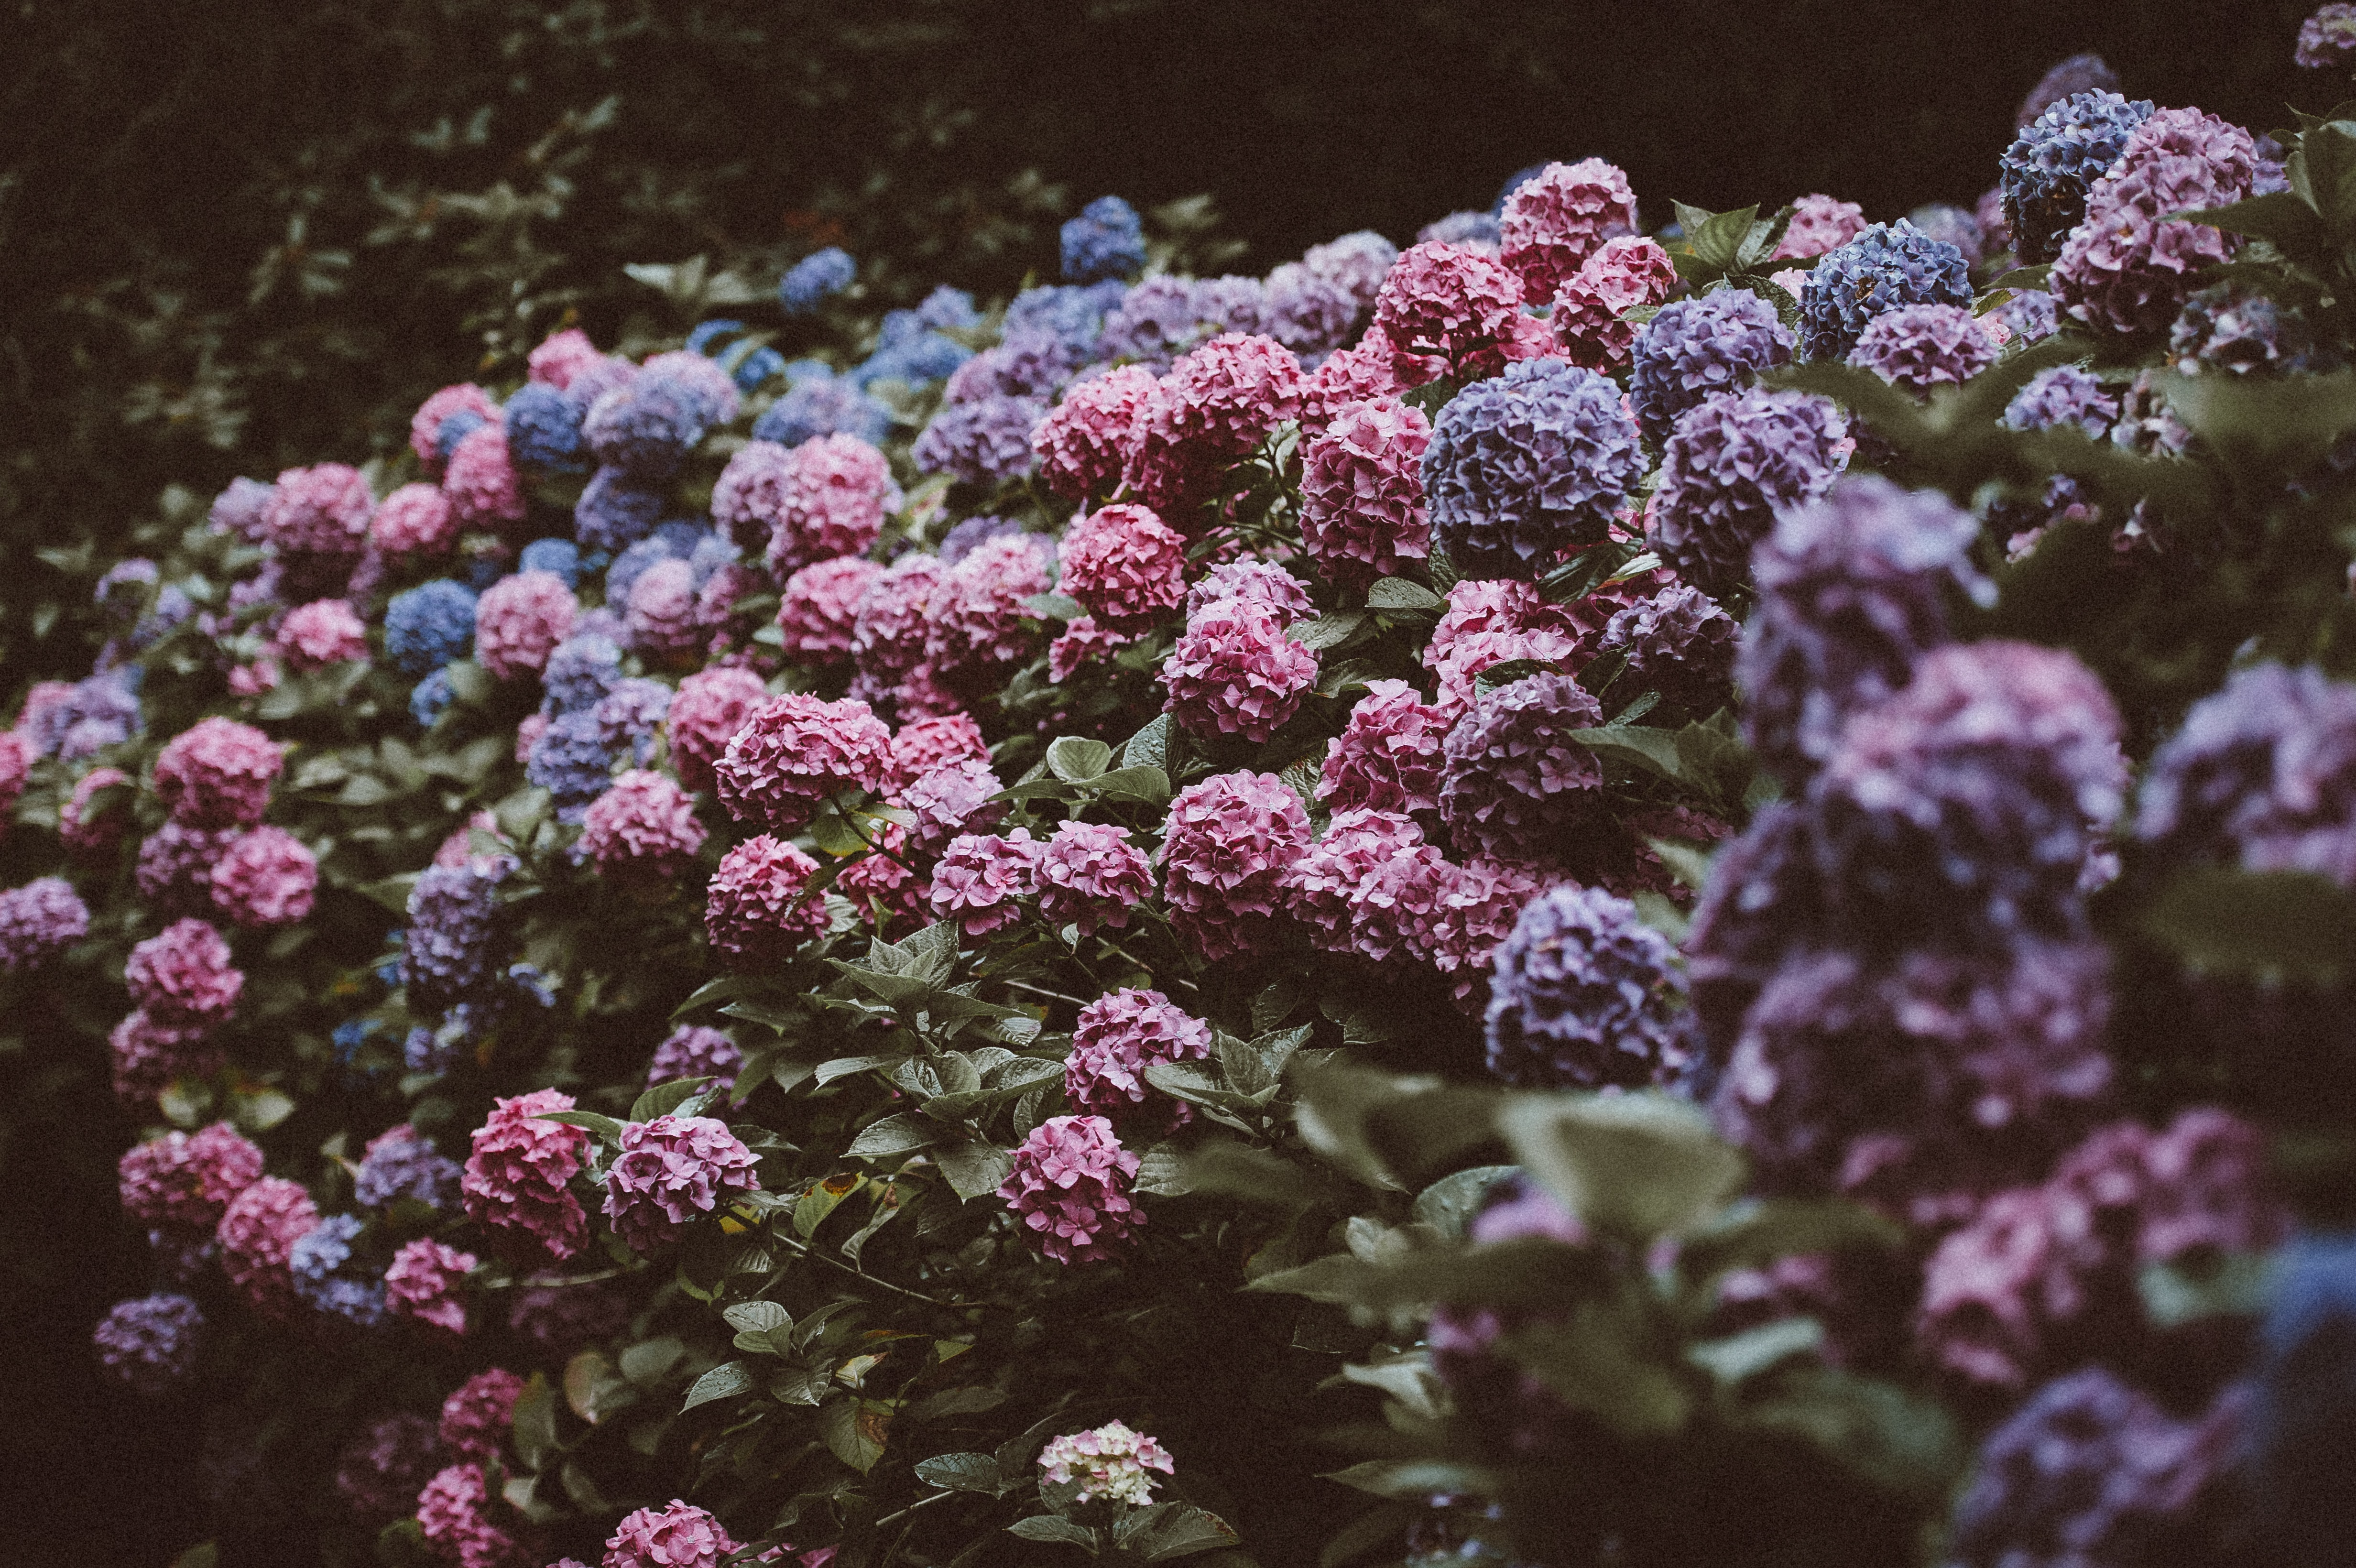 tilt shift lens photo of purple and pink flowers